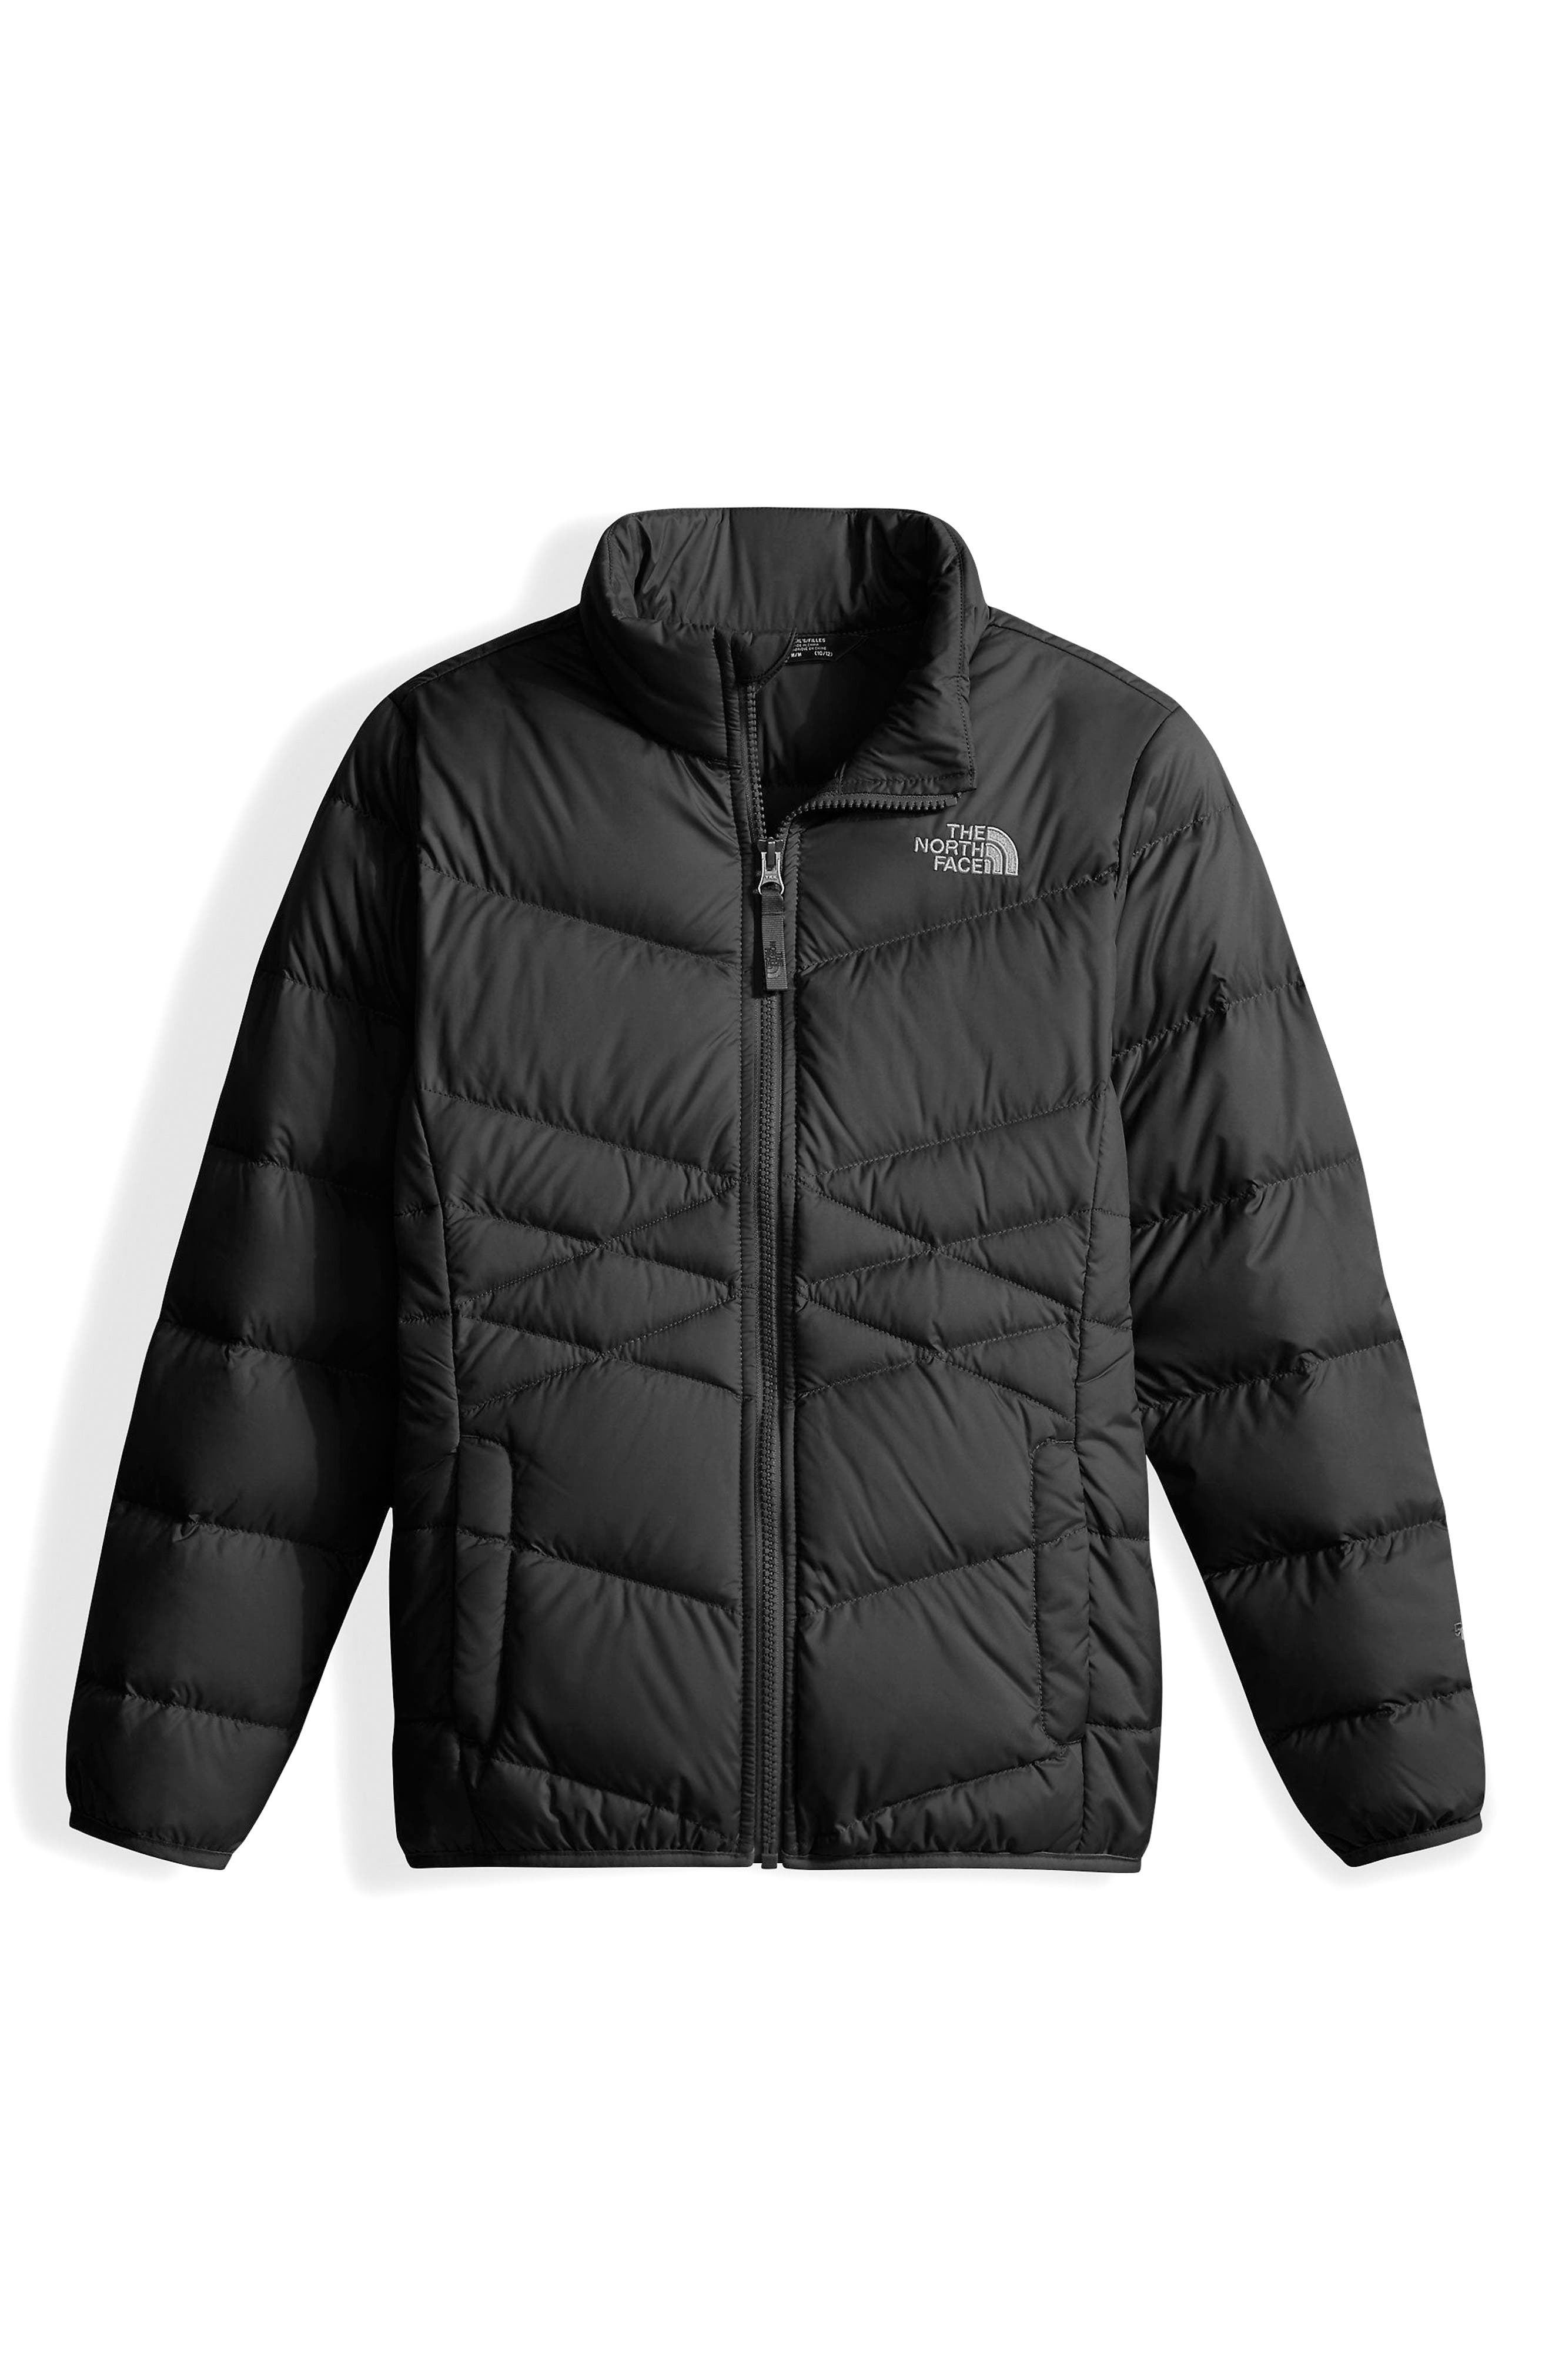 Andes Water Resistant Down Jacket,                         Main,                         color,